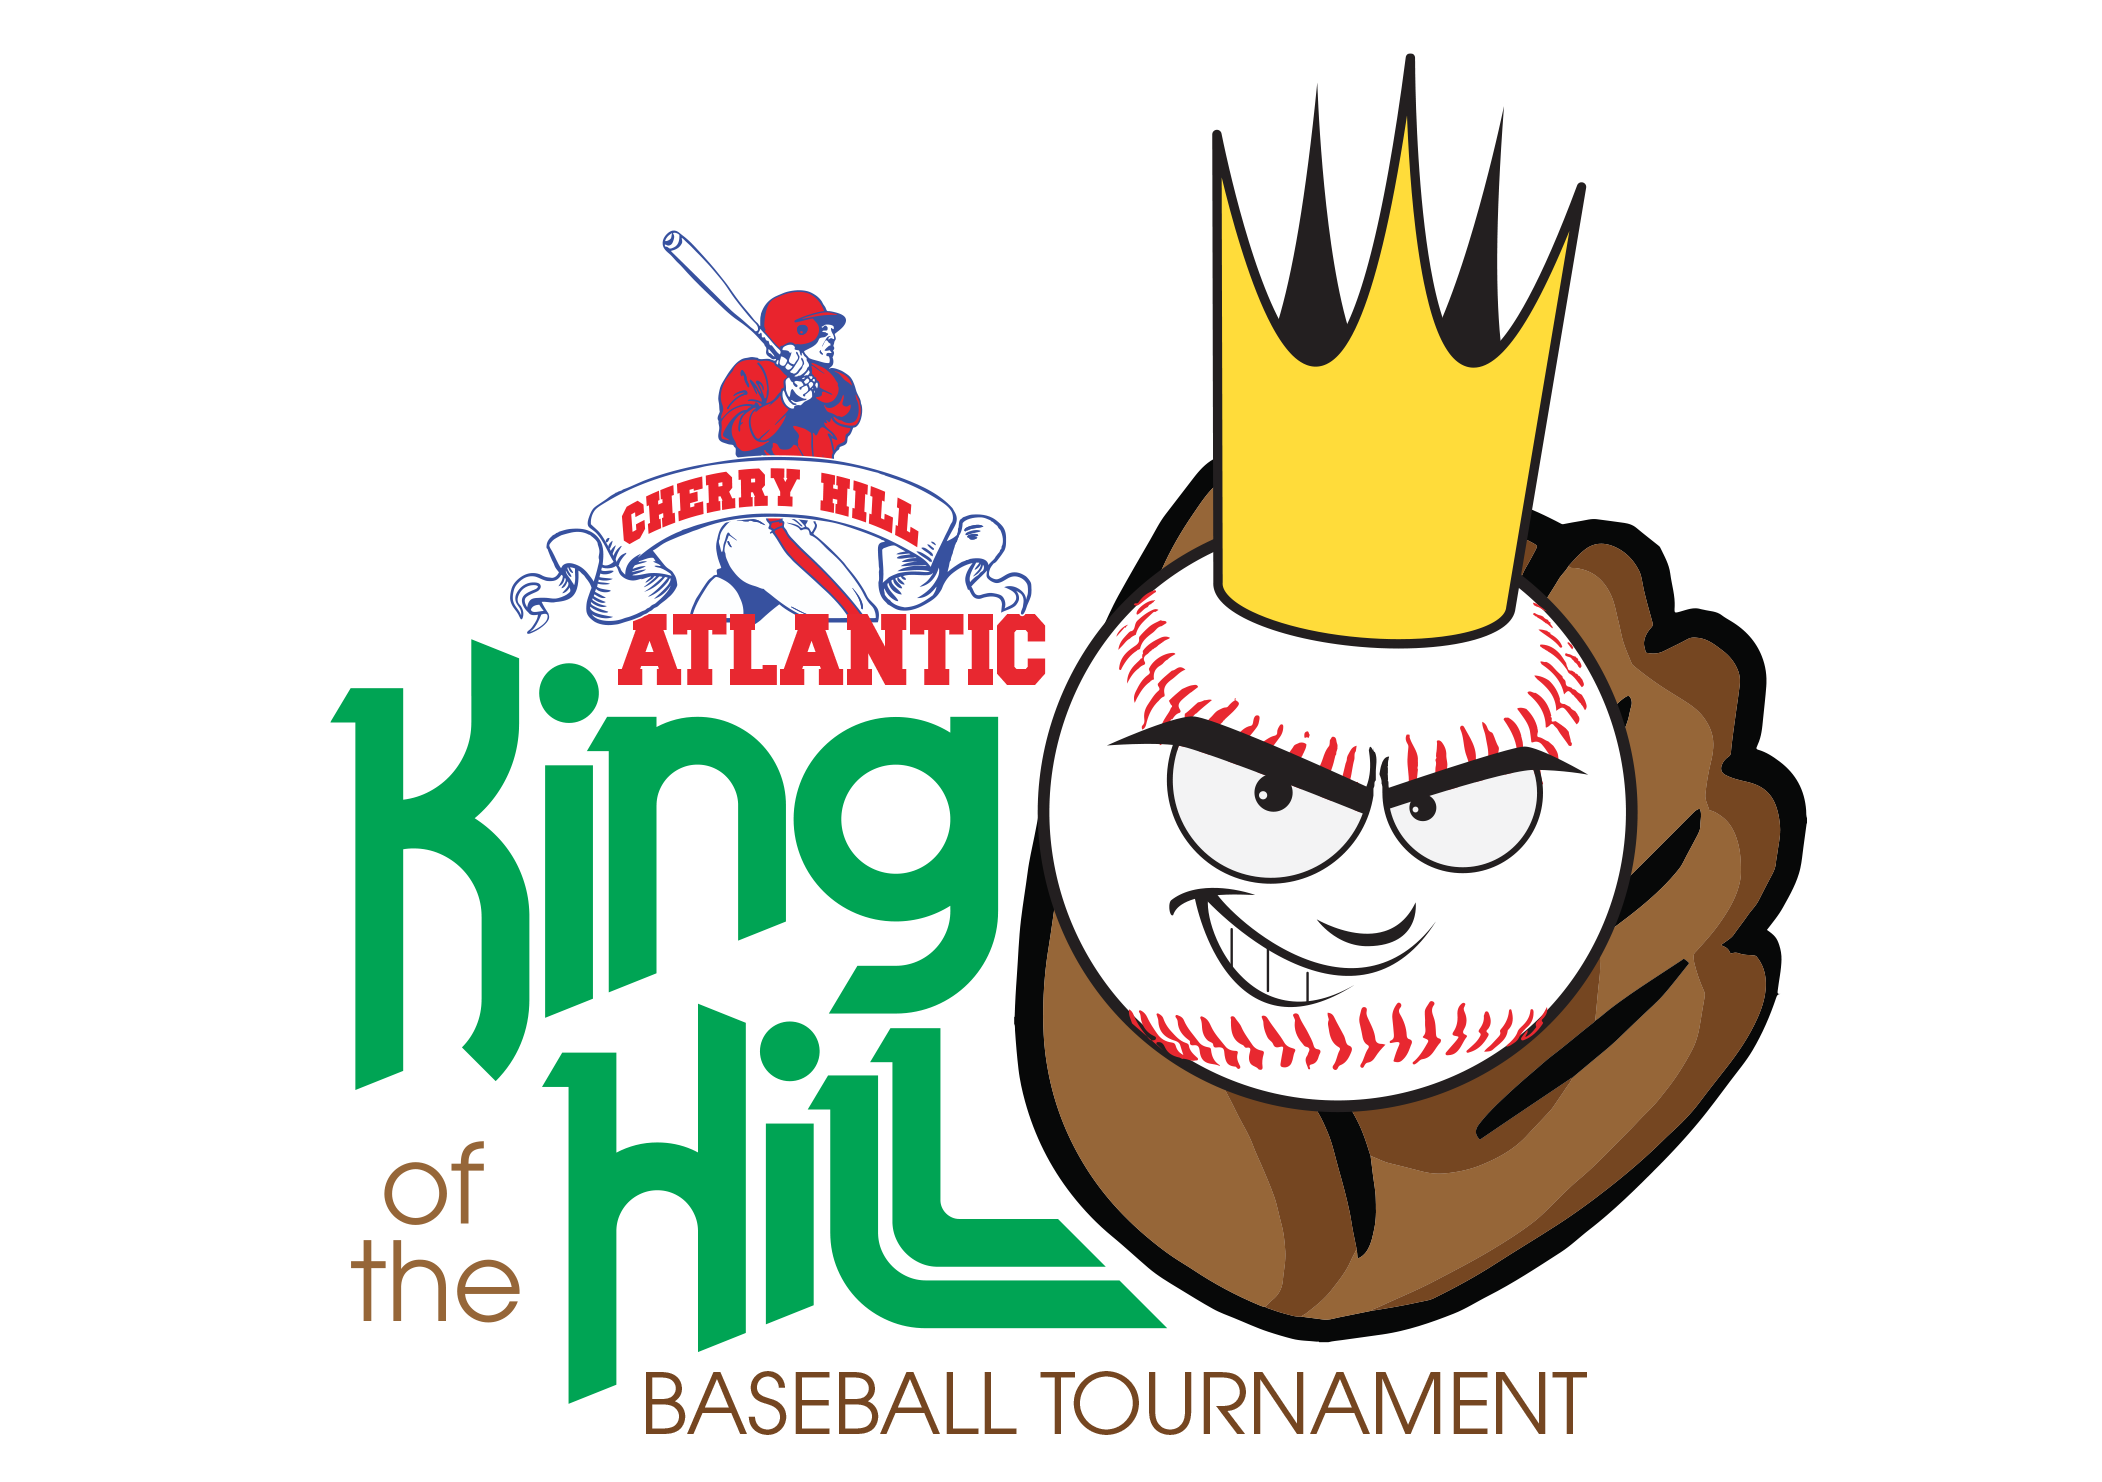 Baseball play offs clipart vector royalty free library 2018 CHALL King of the Hill Baseball Tournament vector royalty free library